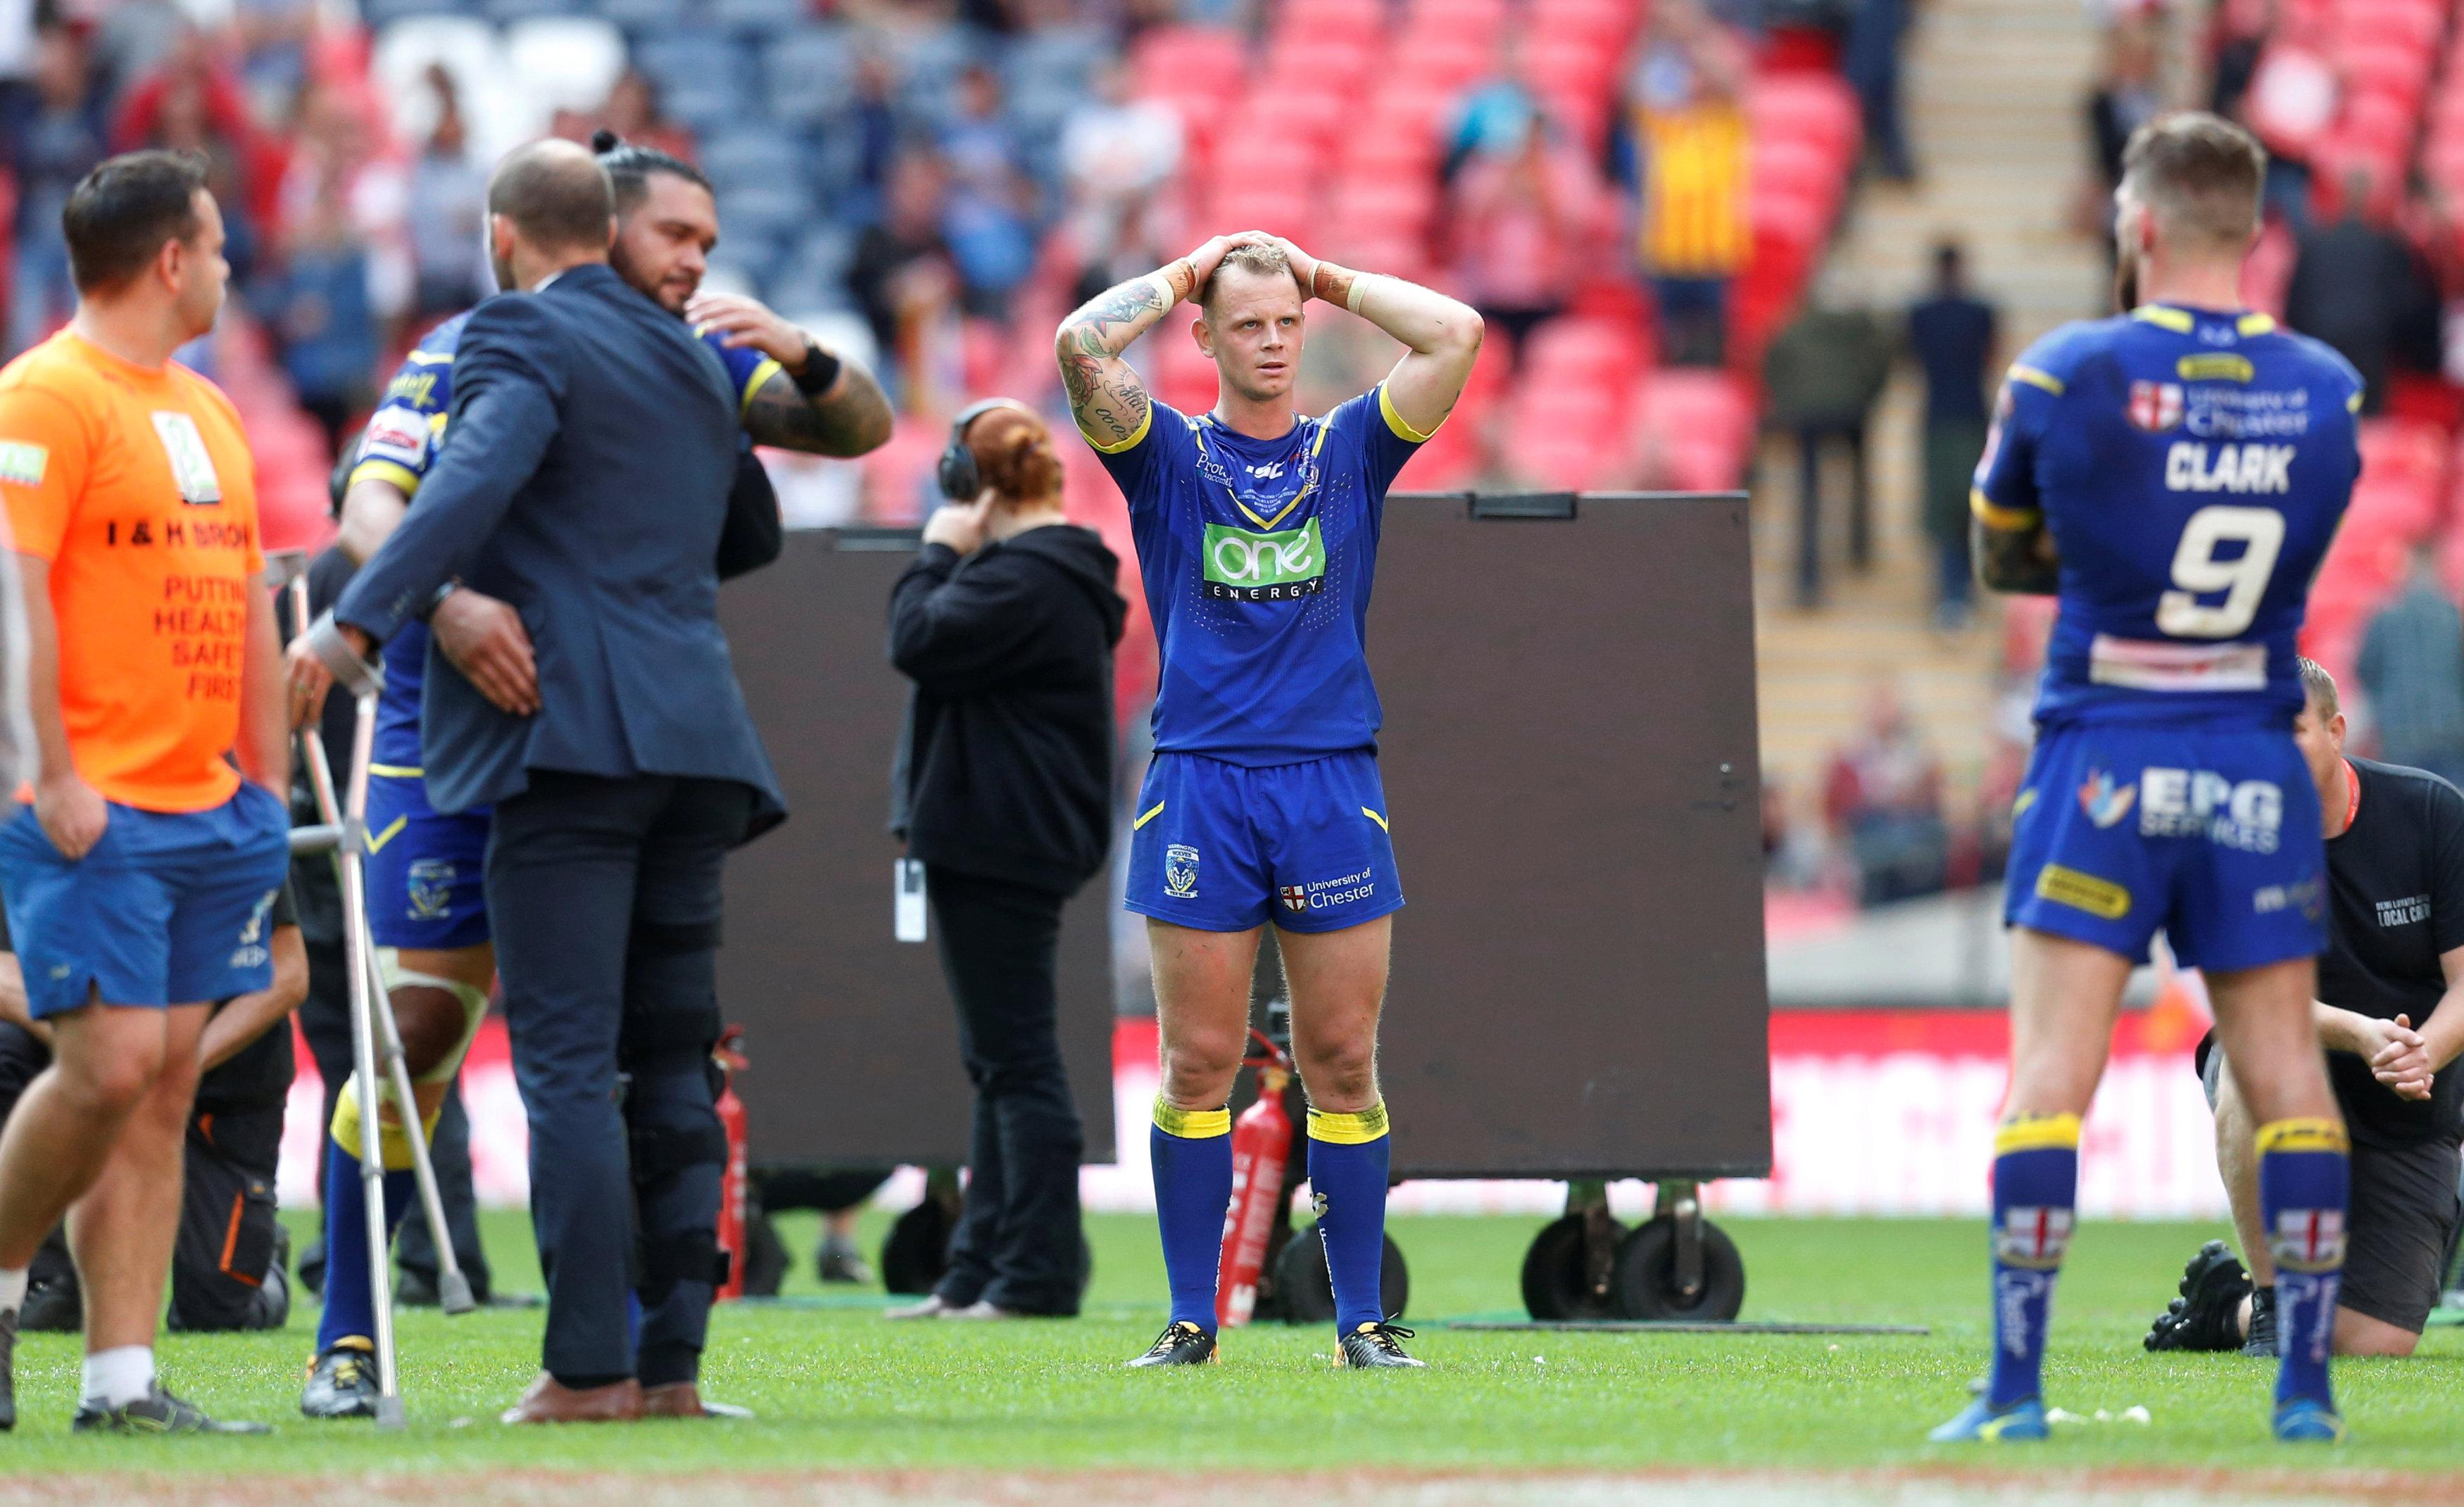 There were opposite emotions for the Warrington players